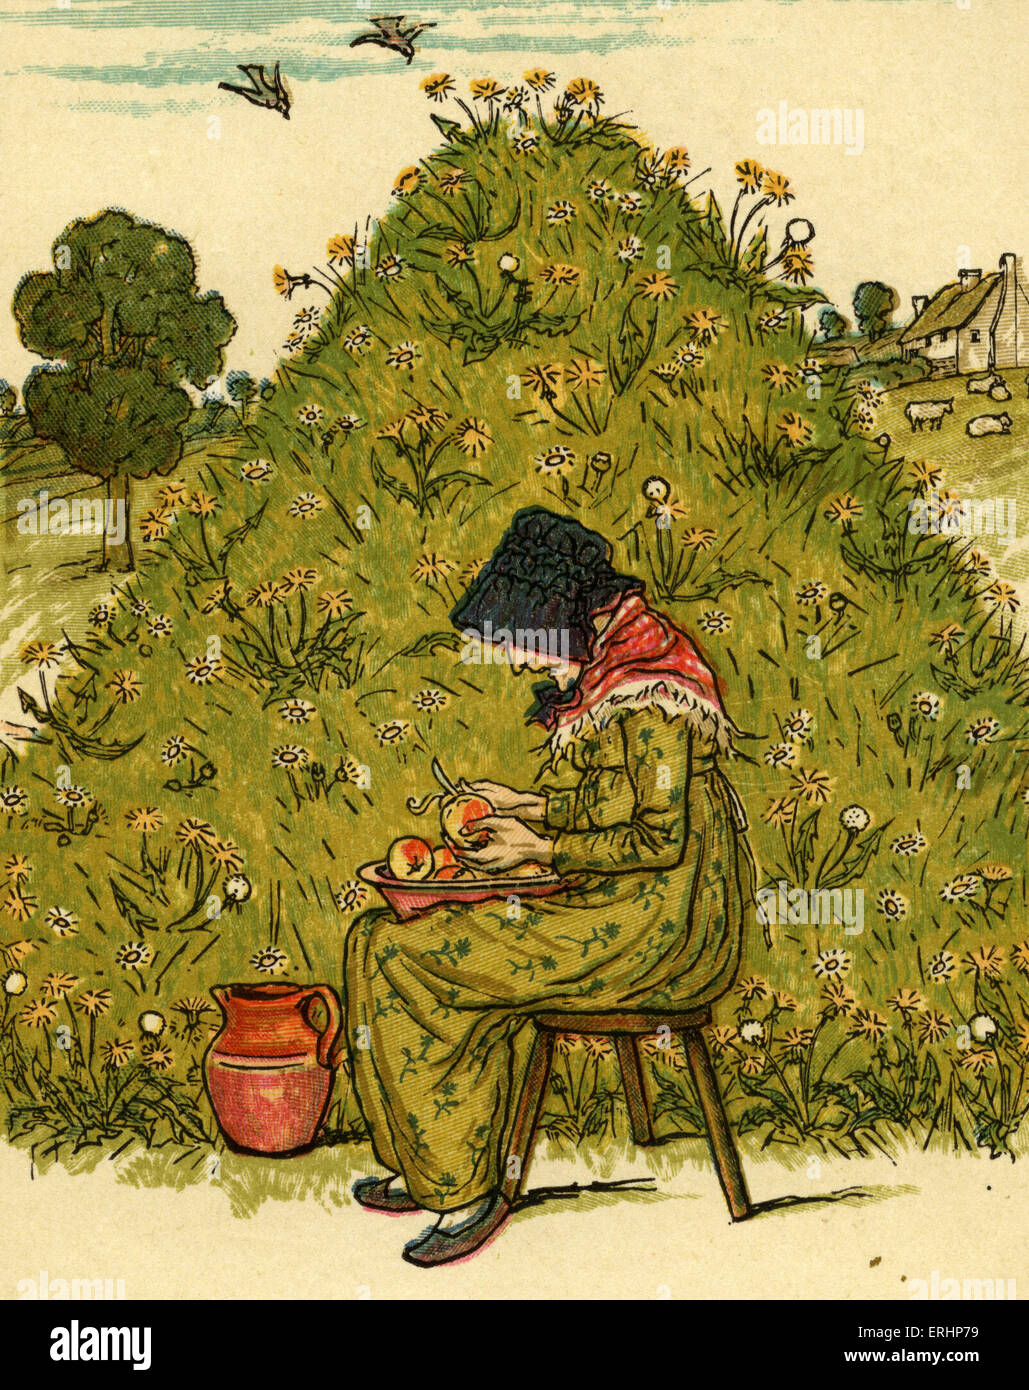 There was an old woman nursery rhyme illustrated by Kate Greenaway. English children 's book illustrator and - Stock Image